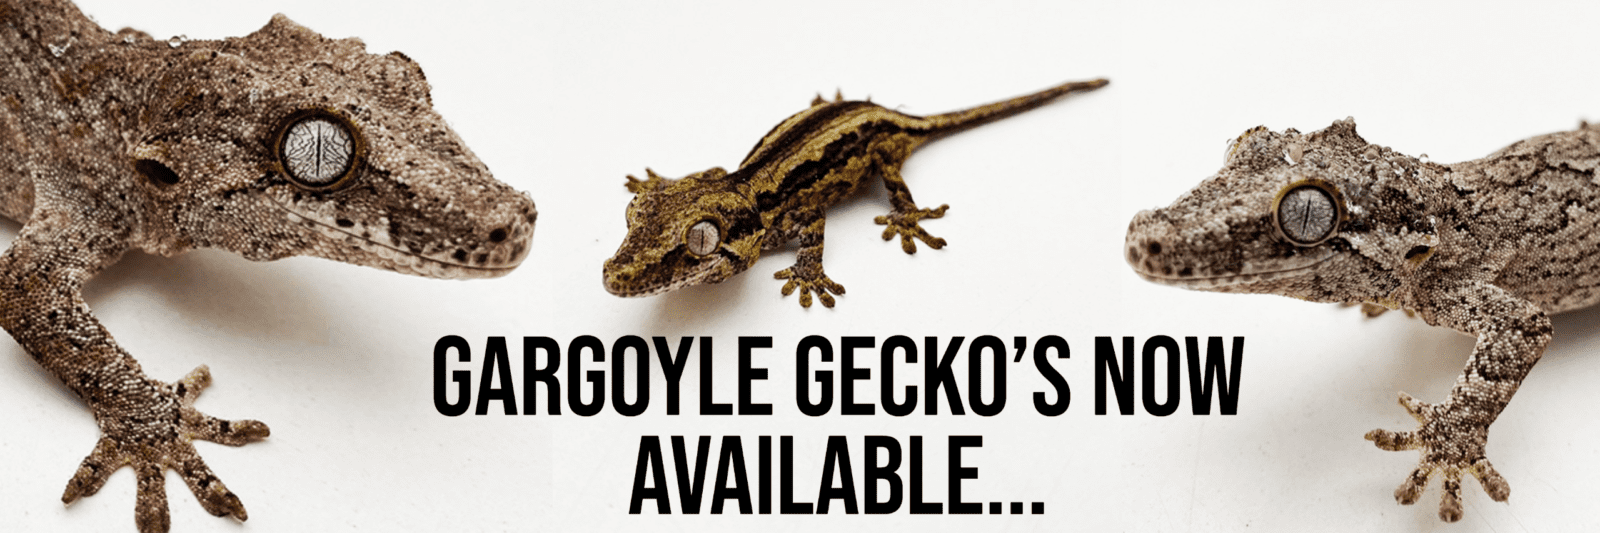 https://blackpoolreptiles.co.uk/product-category/live/lizards/geckos/gargoyle-geckos/